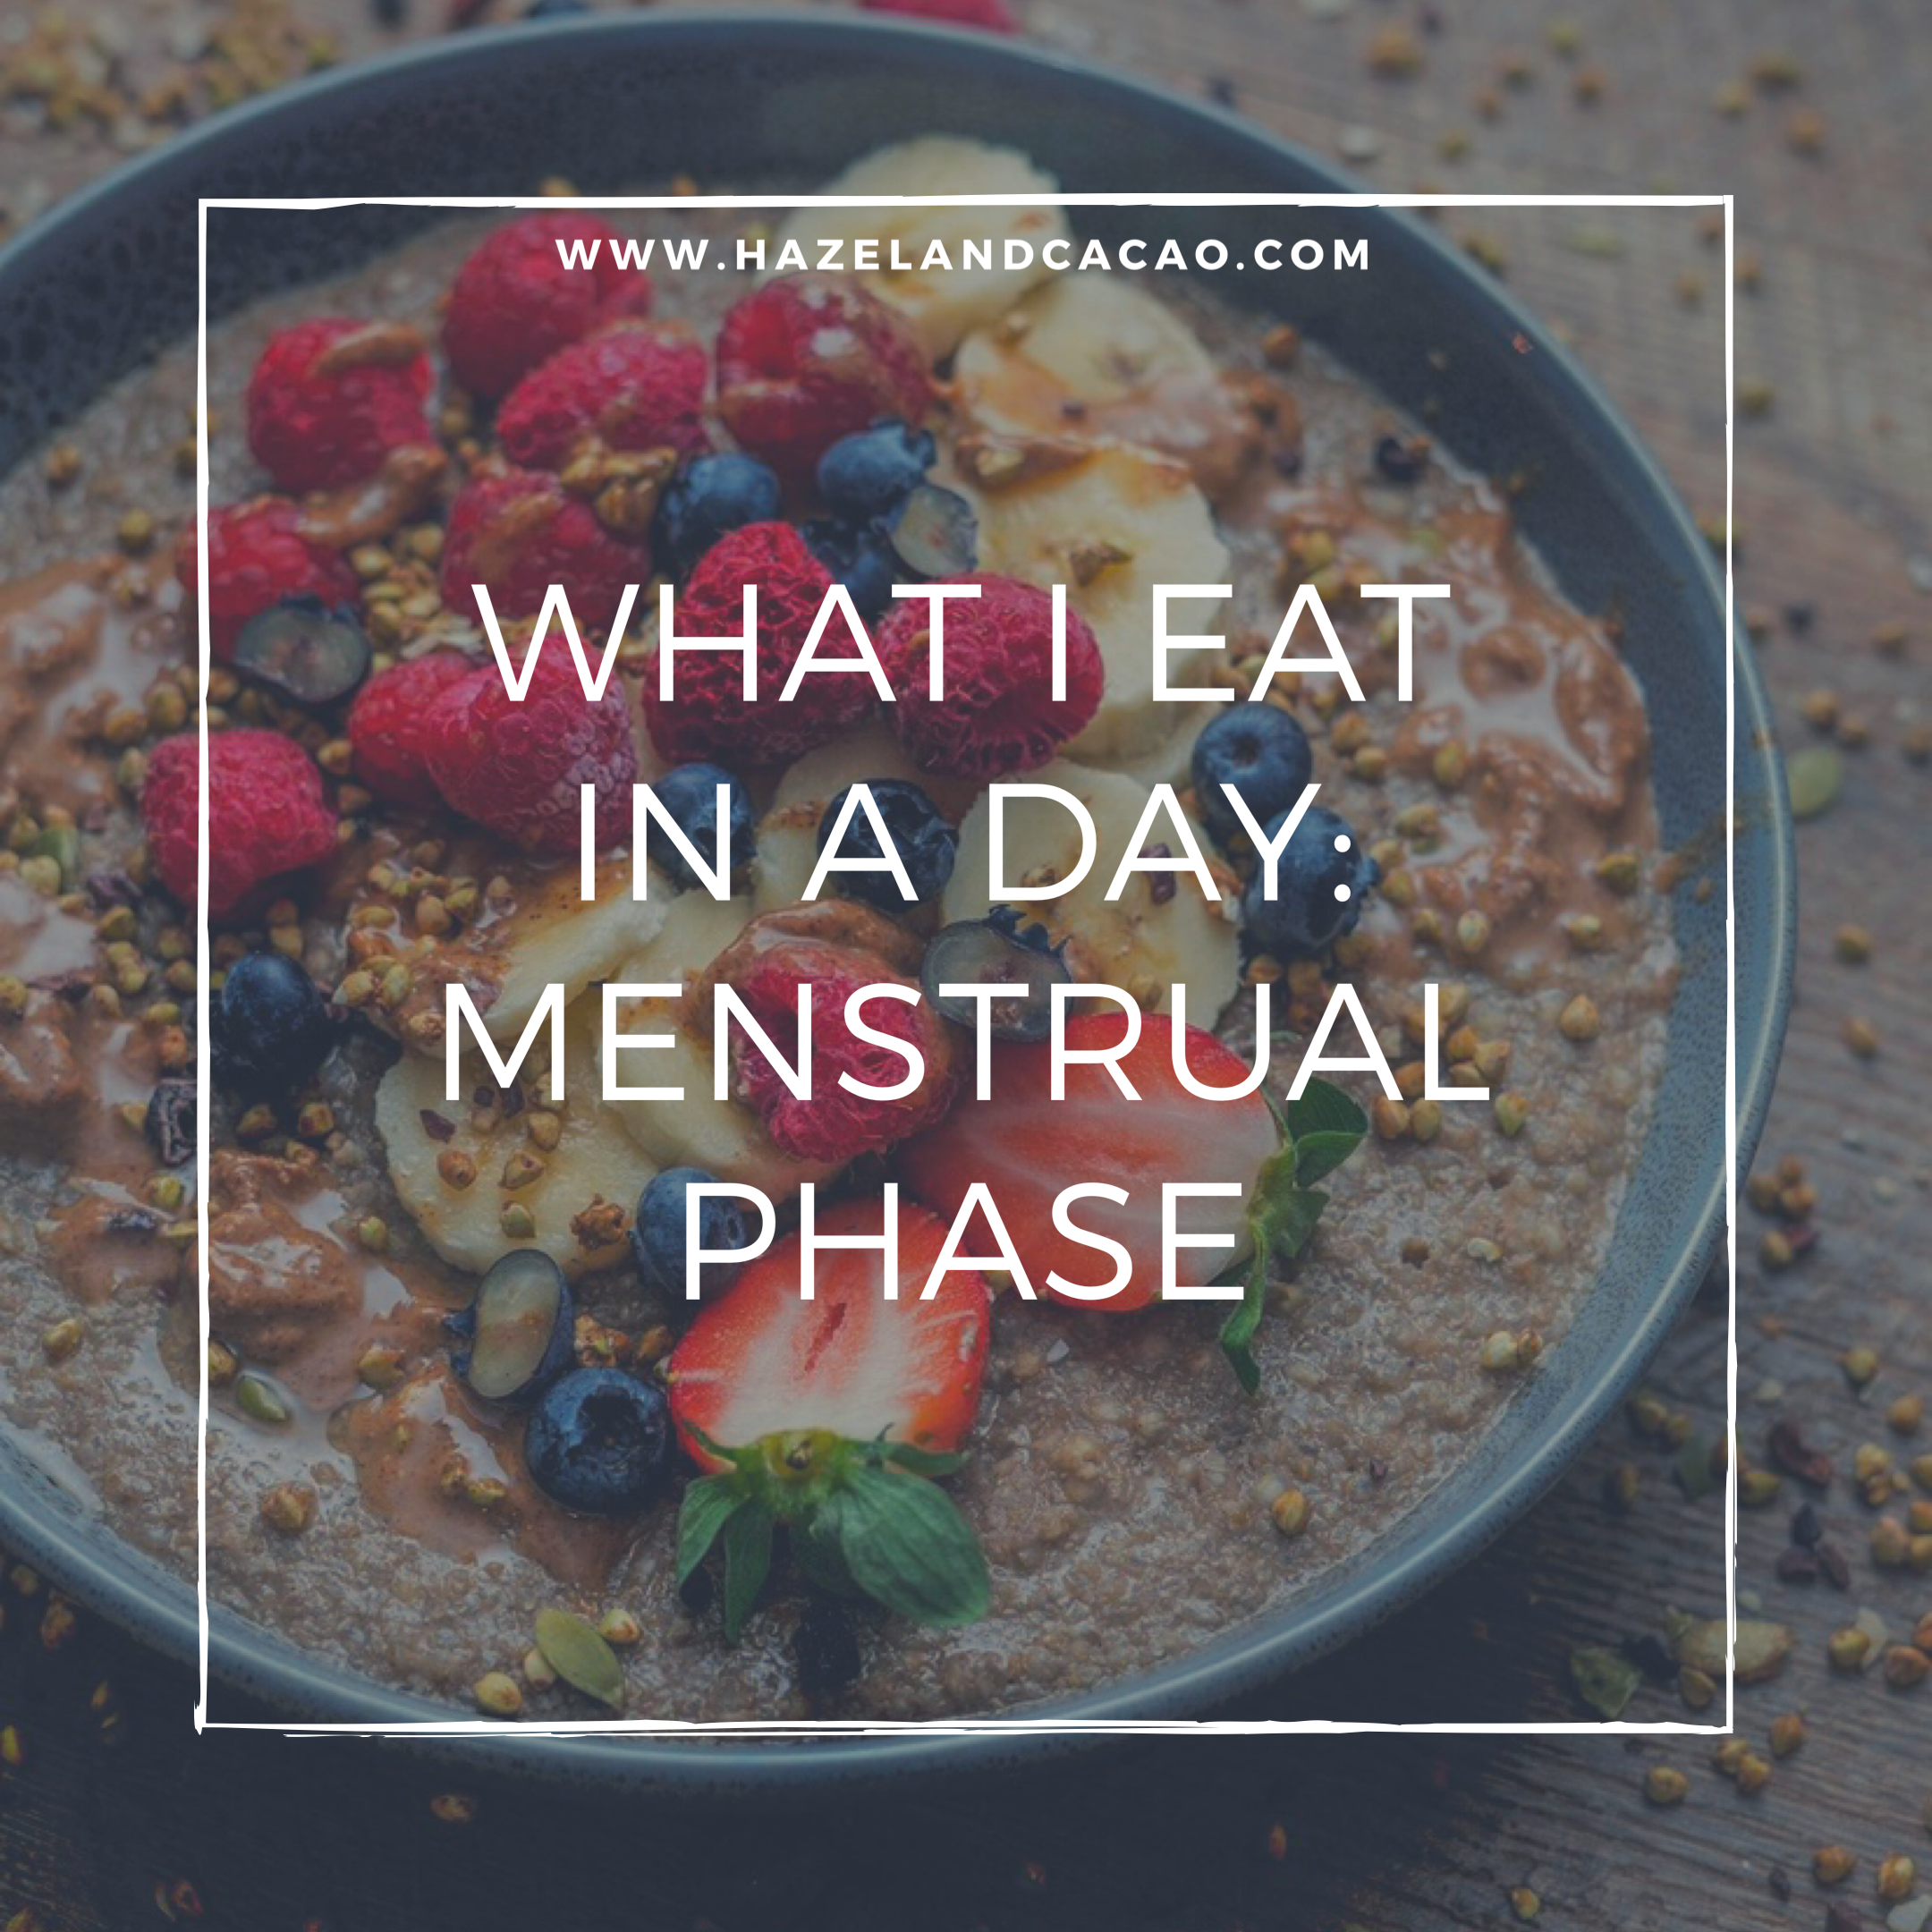 What I eat in a day: Menstrual Phase